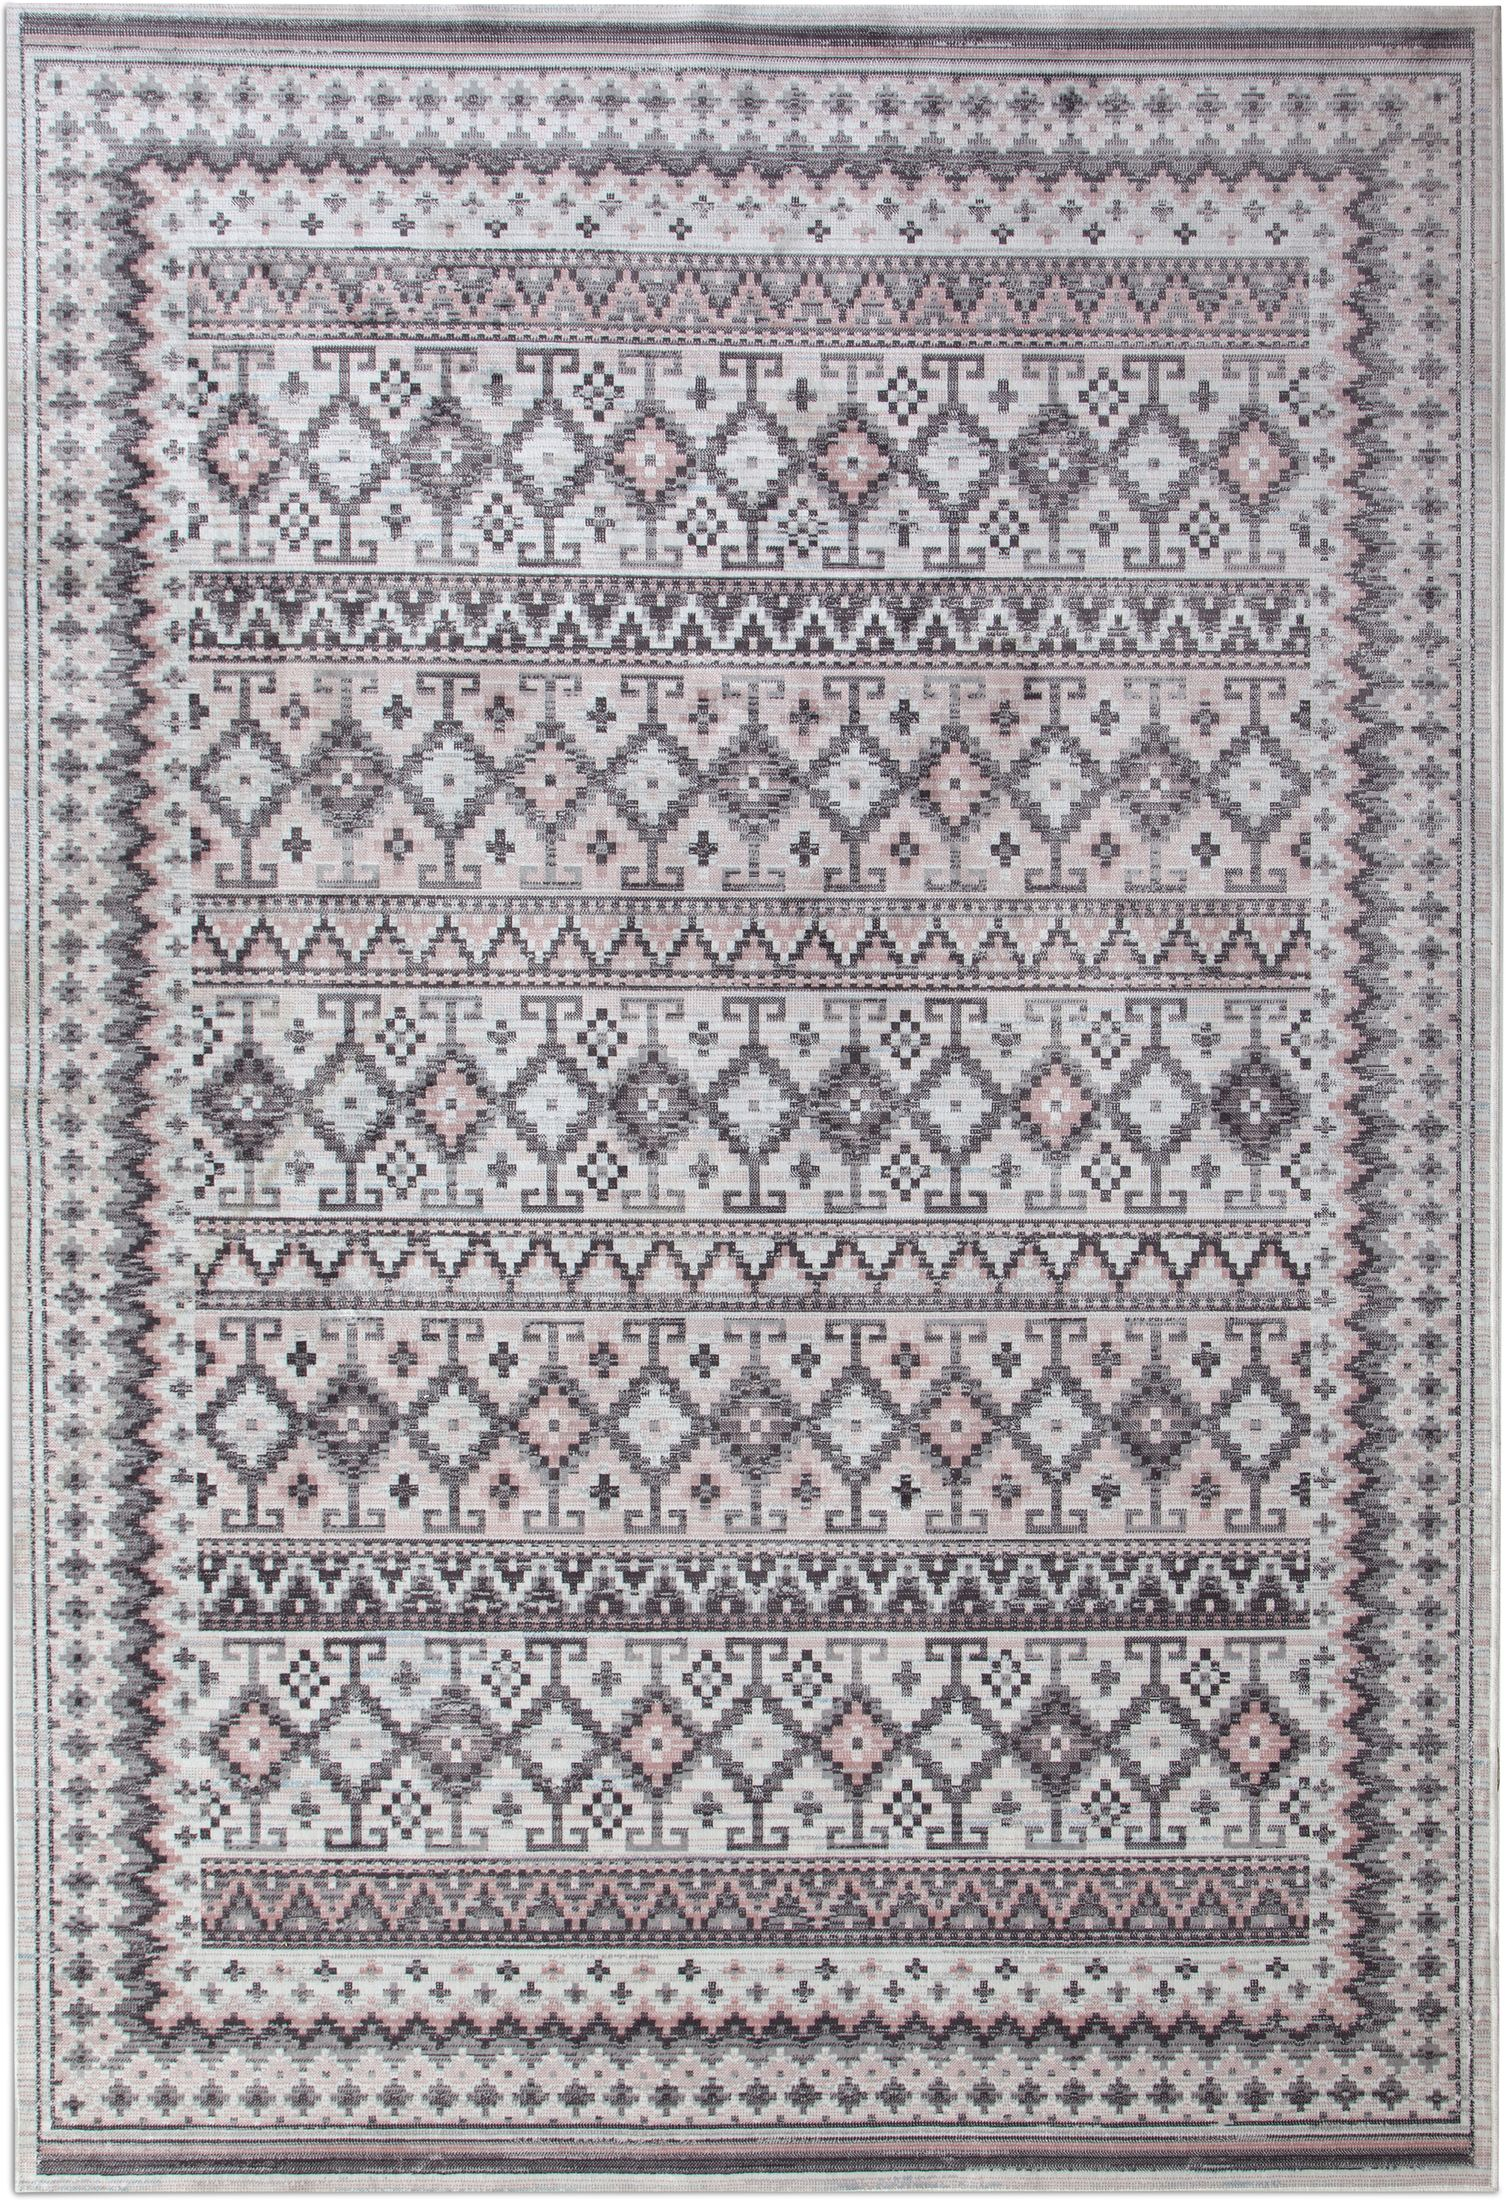 Rugs - Sonoma Area Rug - Blush